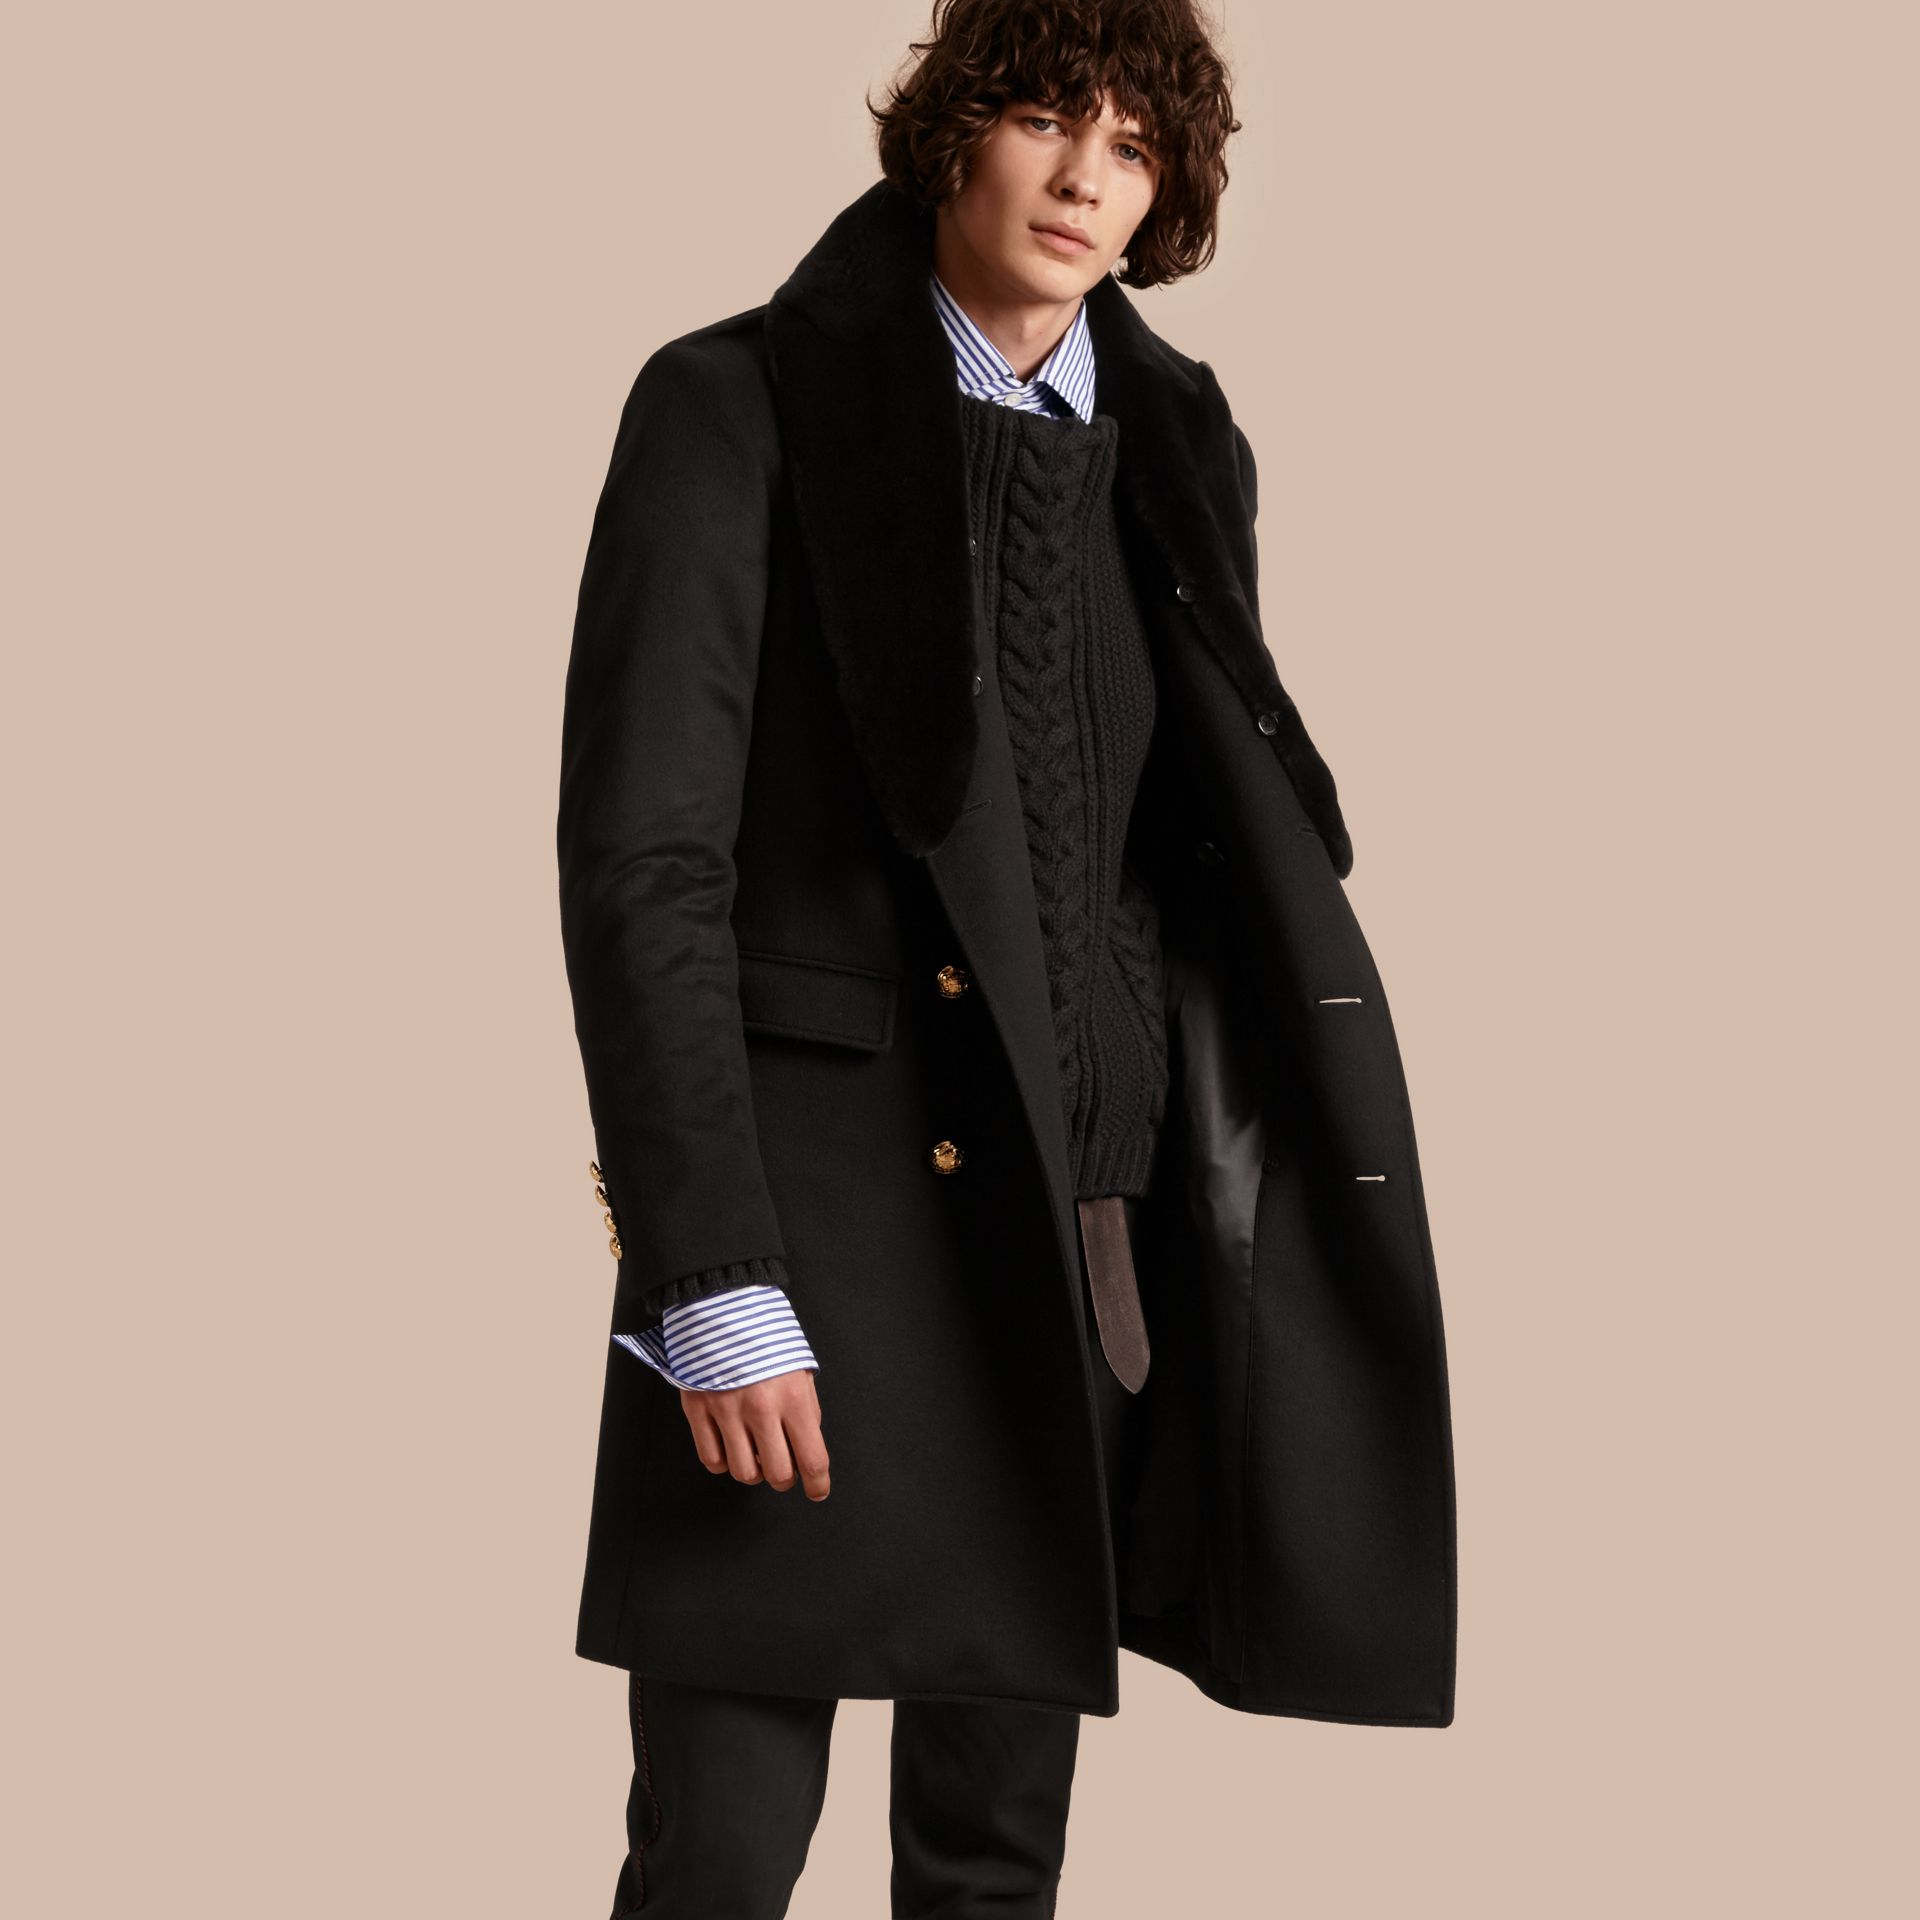 Regimental Cashmere Coat with Detachable Mink Collar - Men | Burberry - gallery image 1